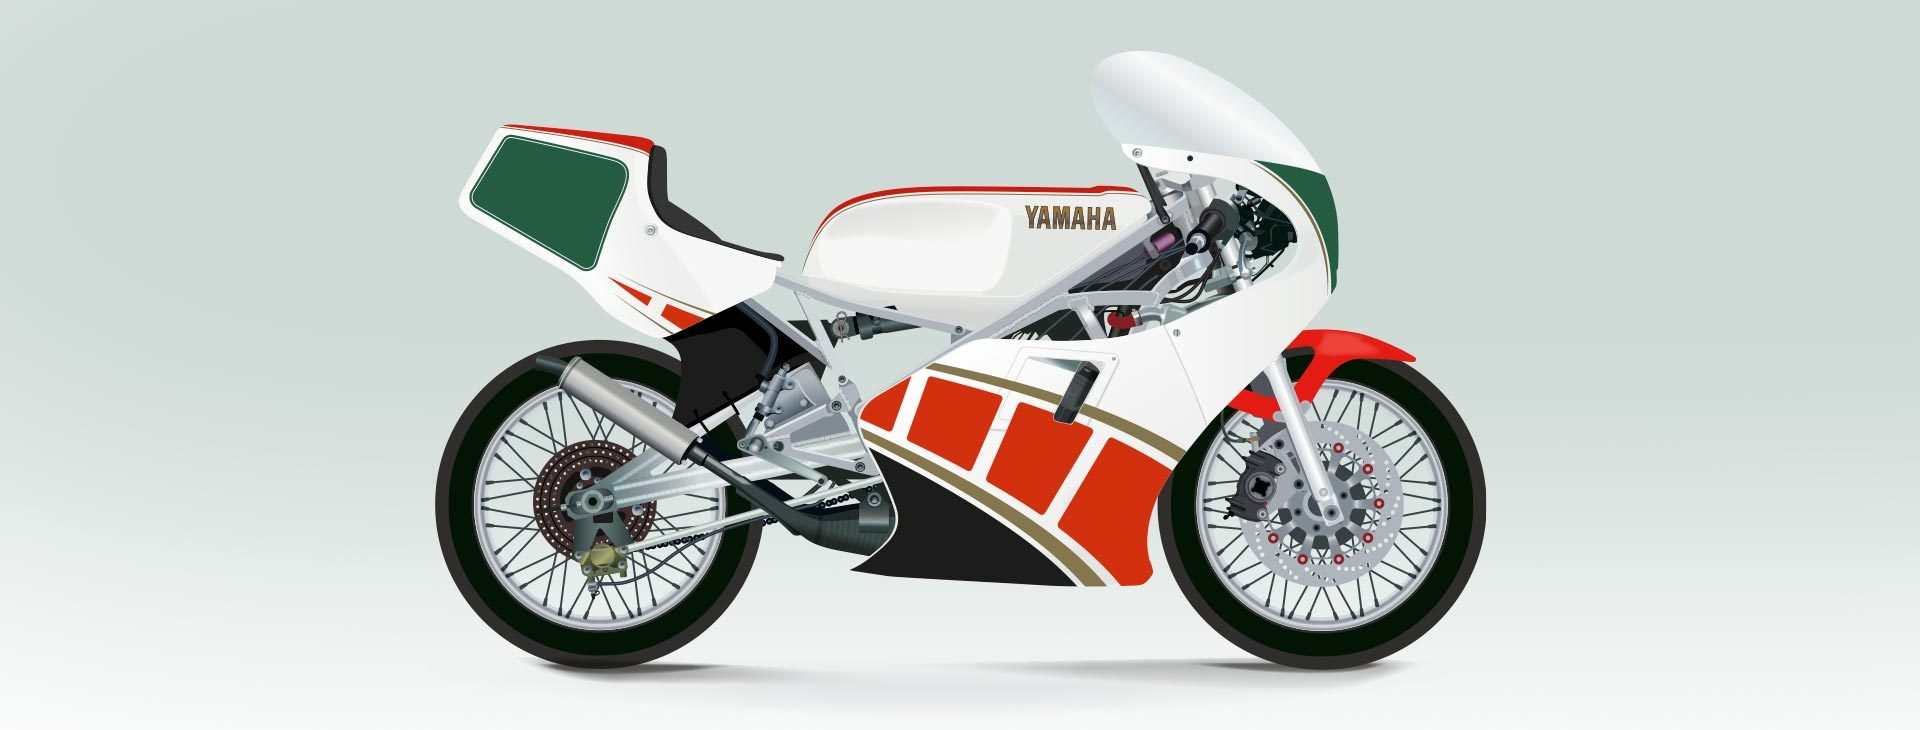 Spyre design for Yamaha TZ250